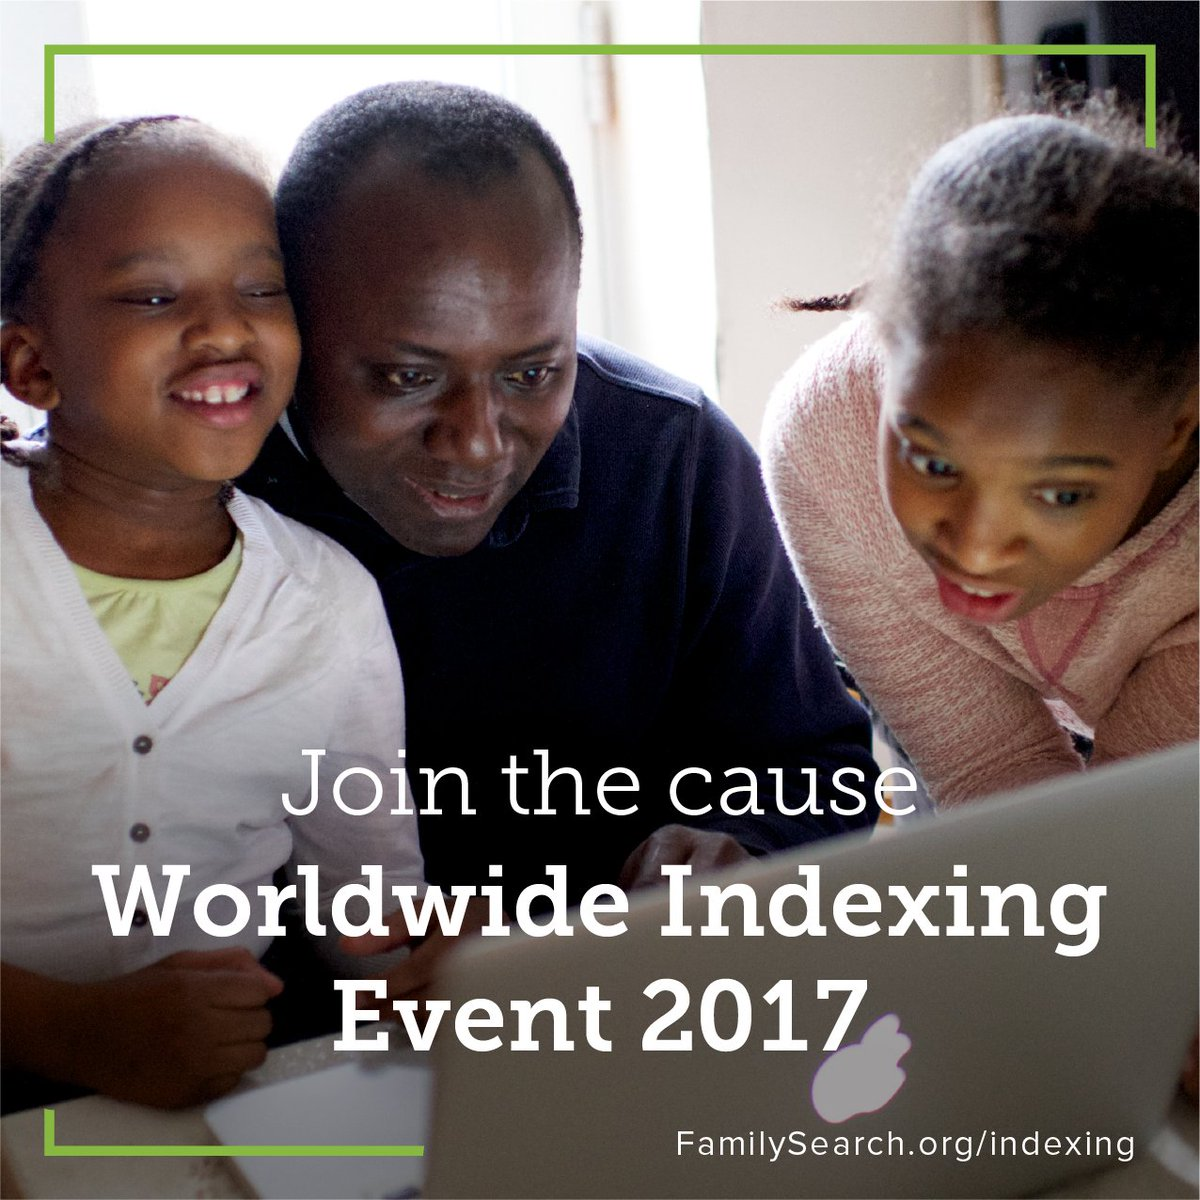 #Indexing is essential! Join the upcoming Worldwide Indexing Event and contribute to #familysearchindexing.  http:// bit.ly/2ywJqxg  &nbsp;  <br>http://pic.twitter.com/Ja9xMdLmPb